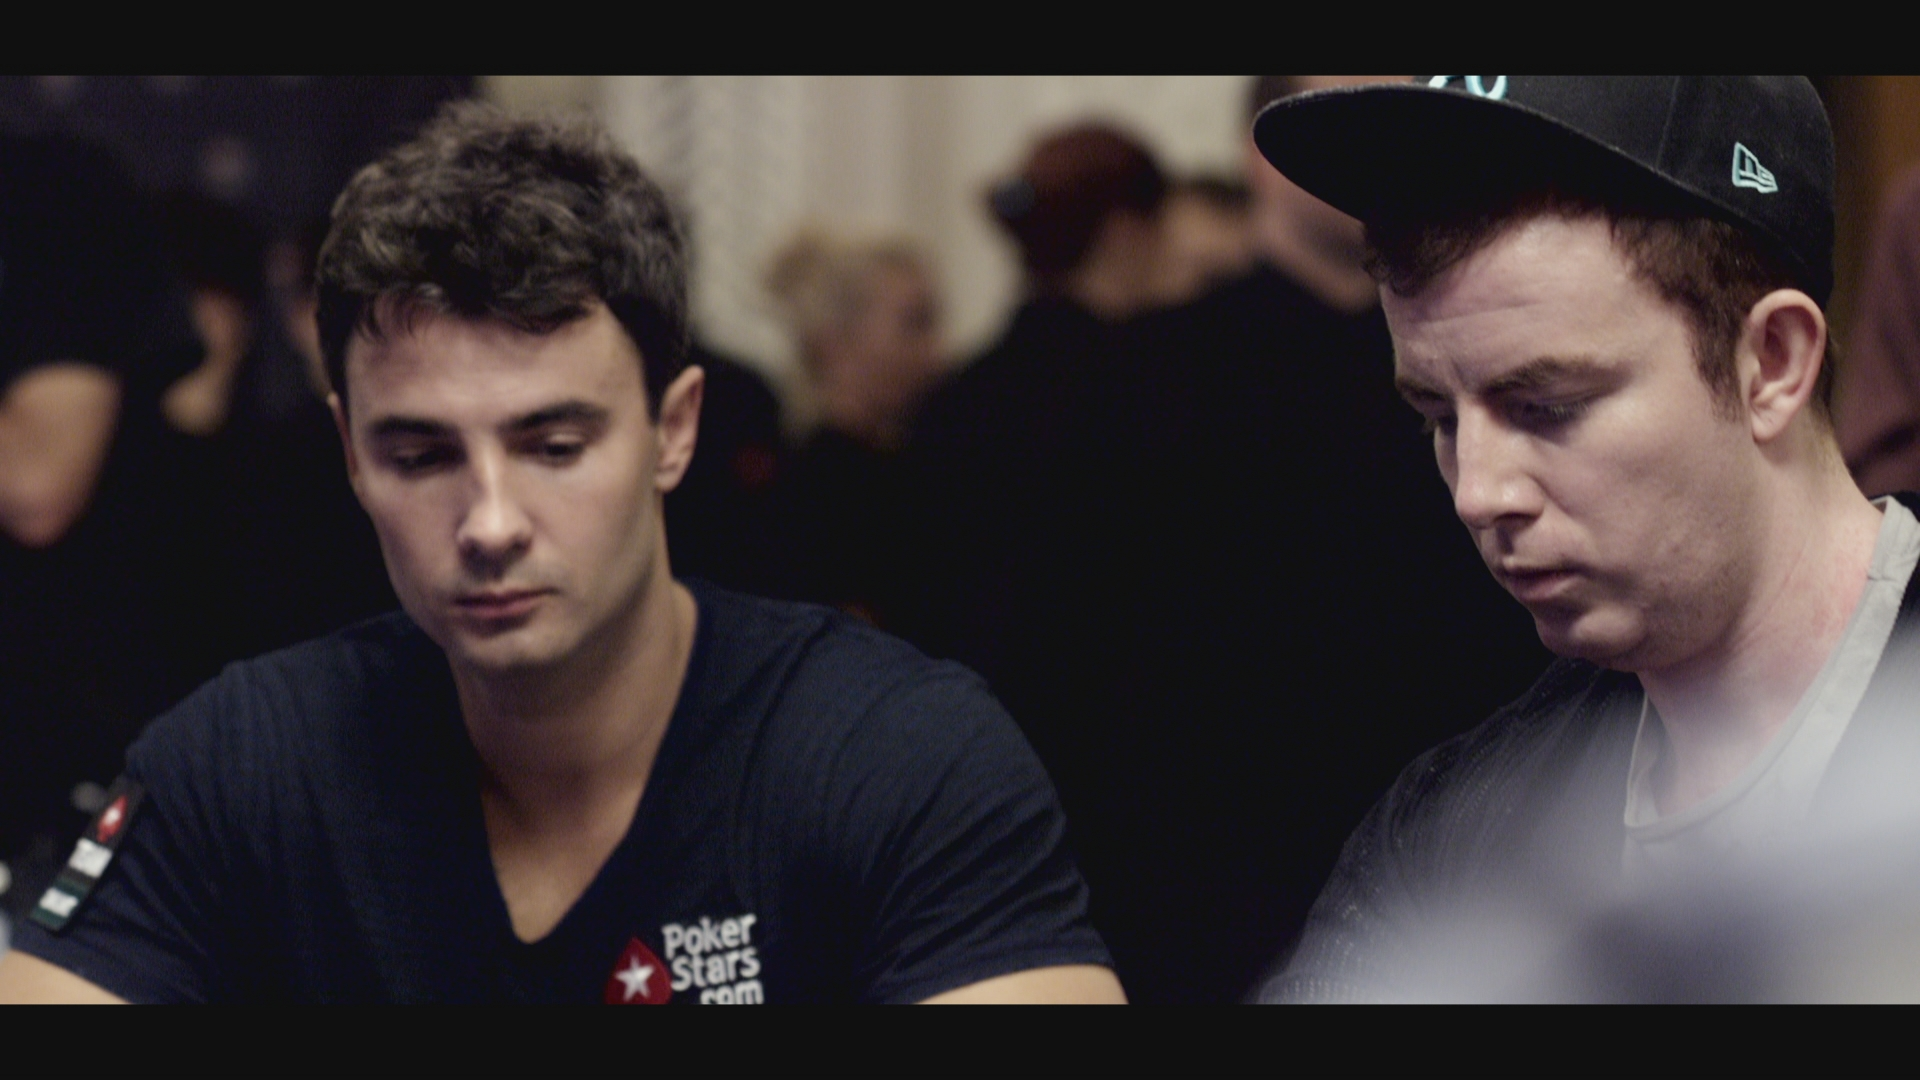 EPT 11 London - Main Event, Episode 5